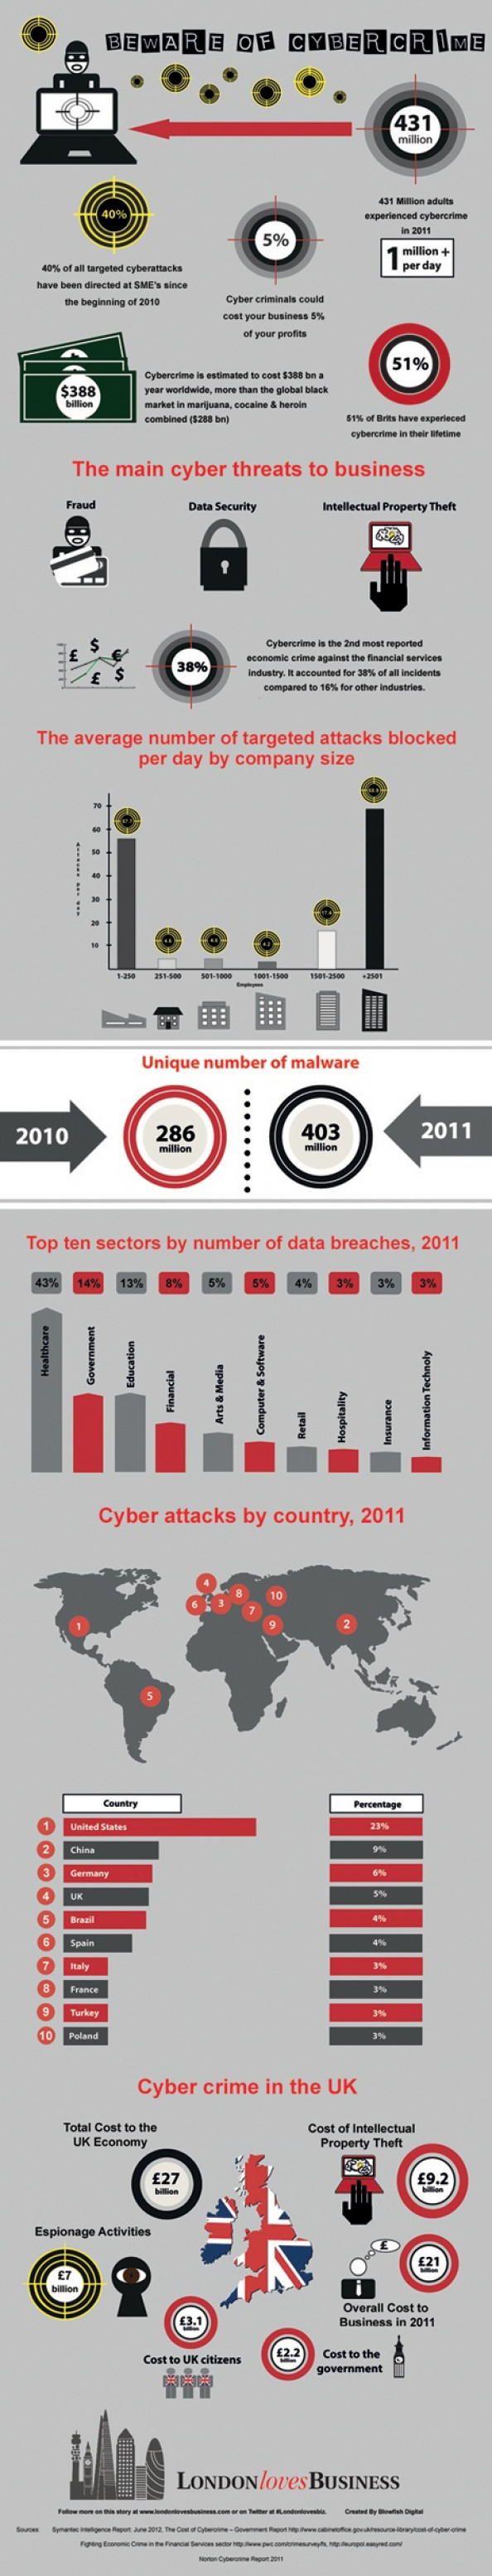 Beware of Cyber attacks Infographic